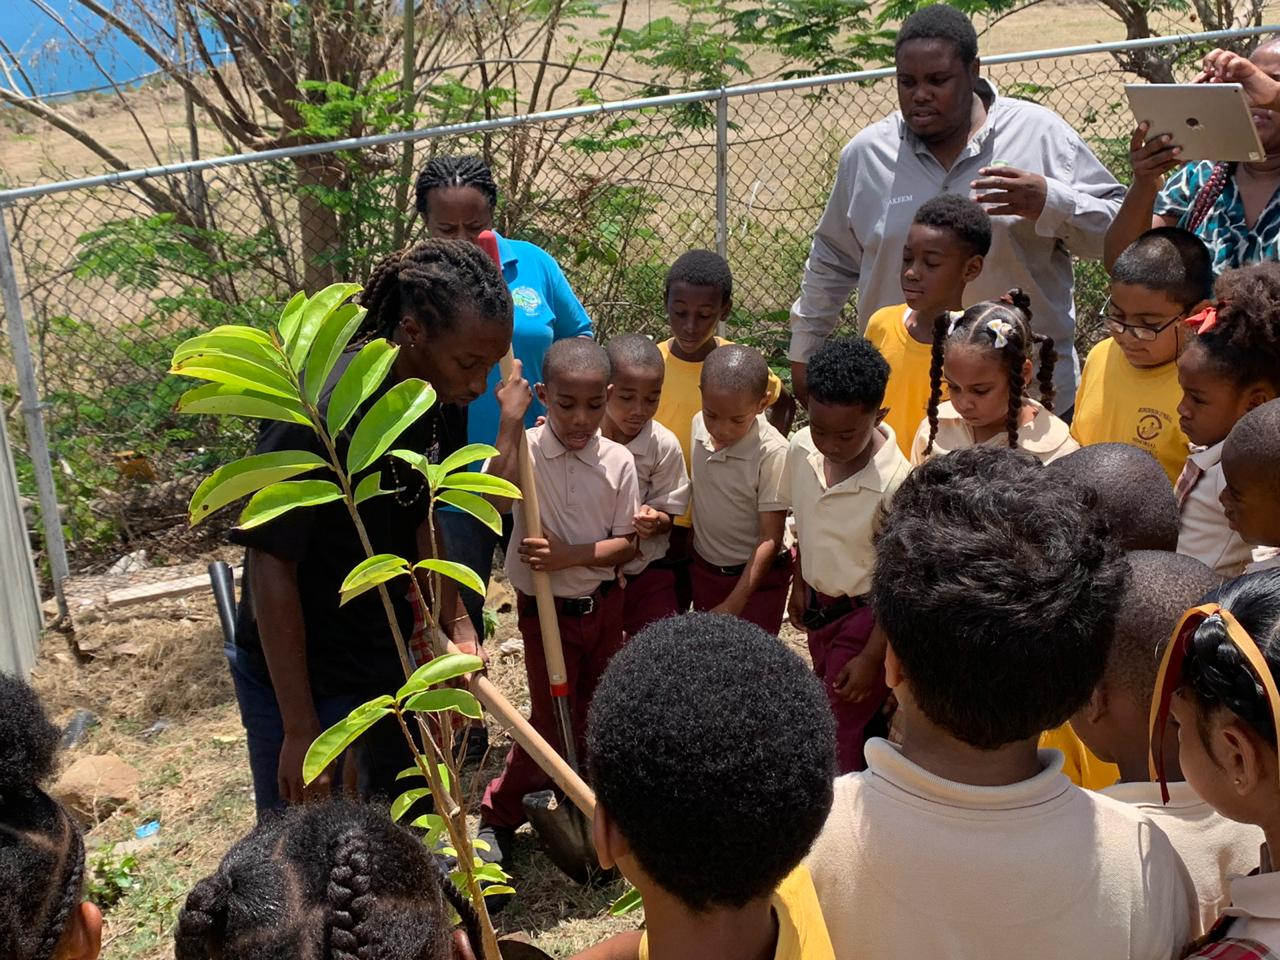 Jahnai Caul and Akeem Leonard of Greencrete VI plant a Caribbean Cherry tree and Soursop tree with students at the Robinson O'Neal Memorial Primary School.